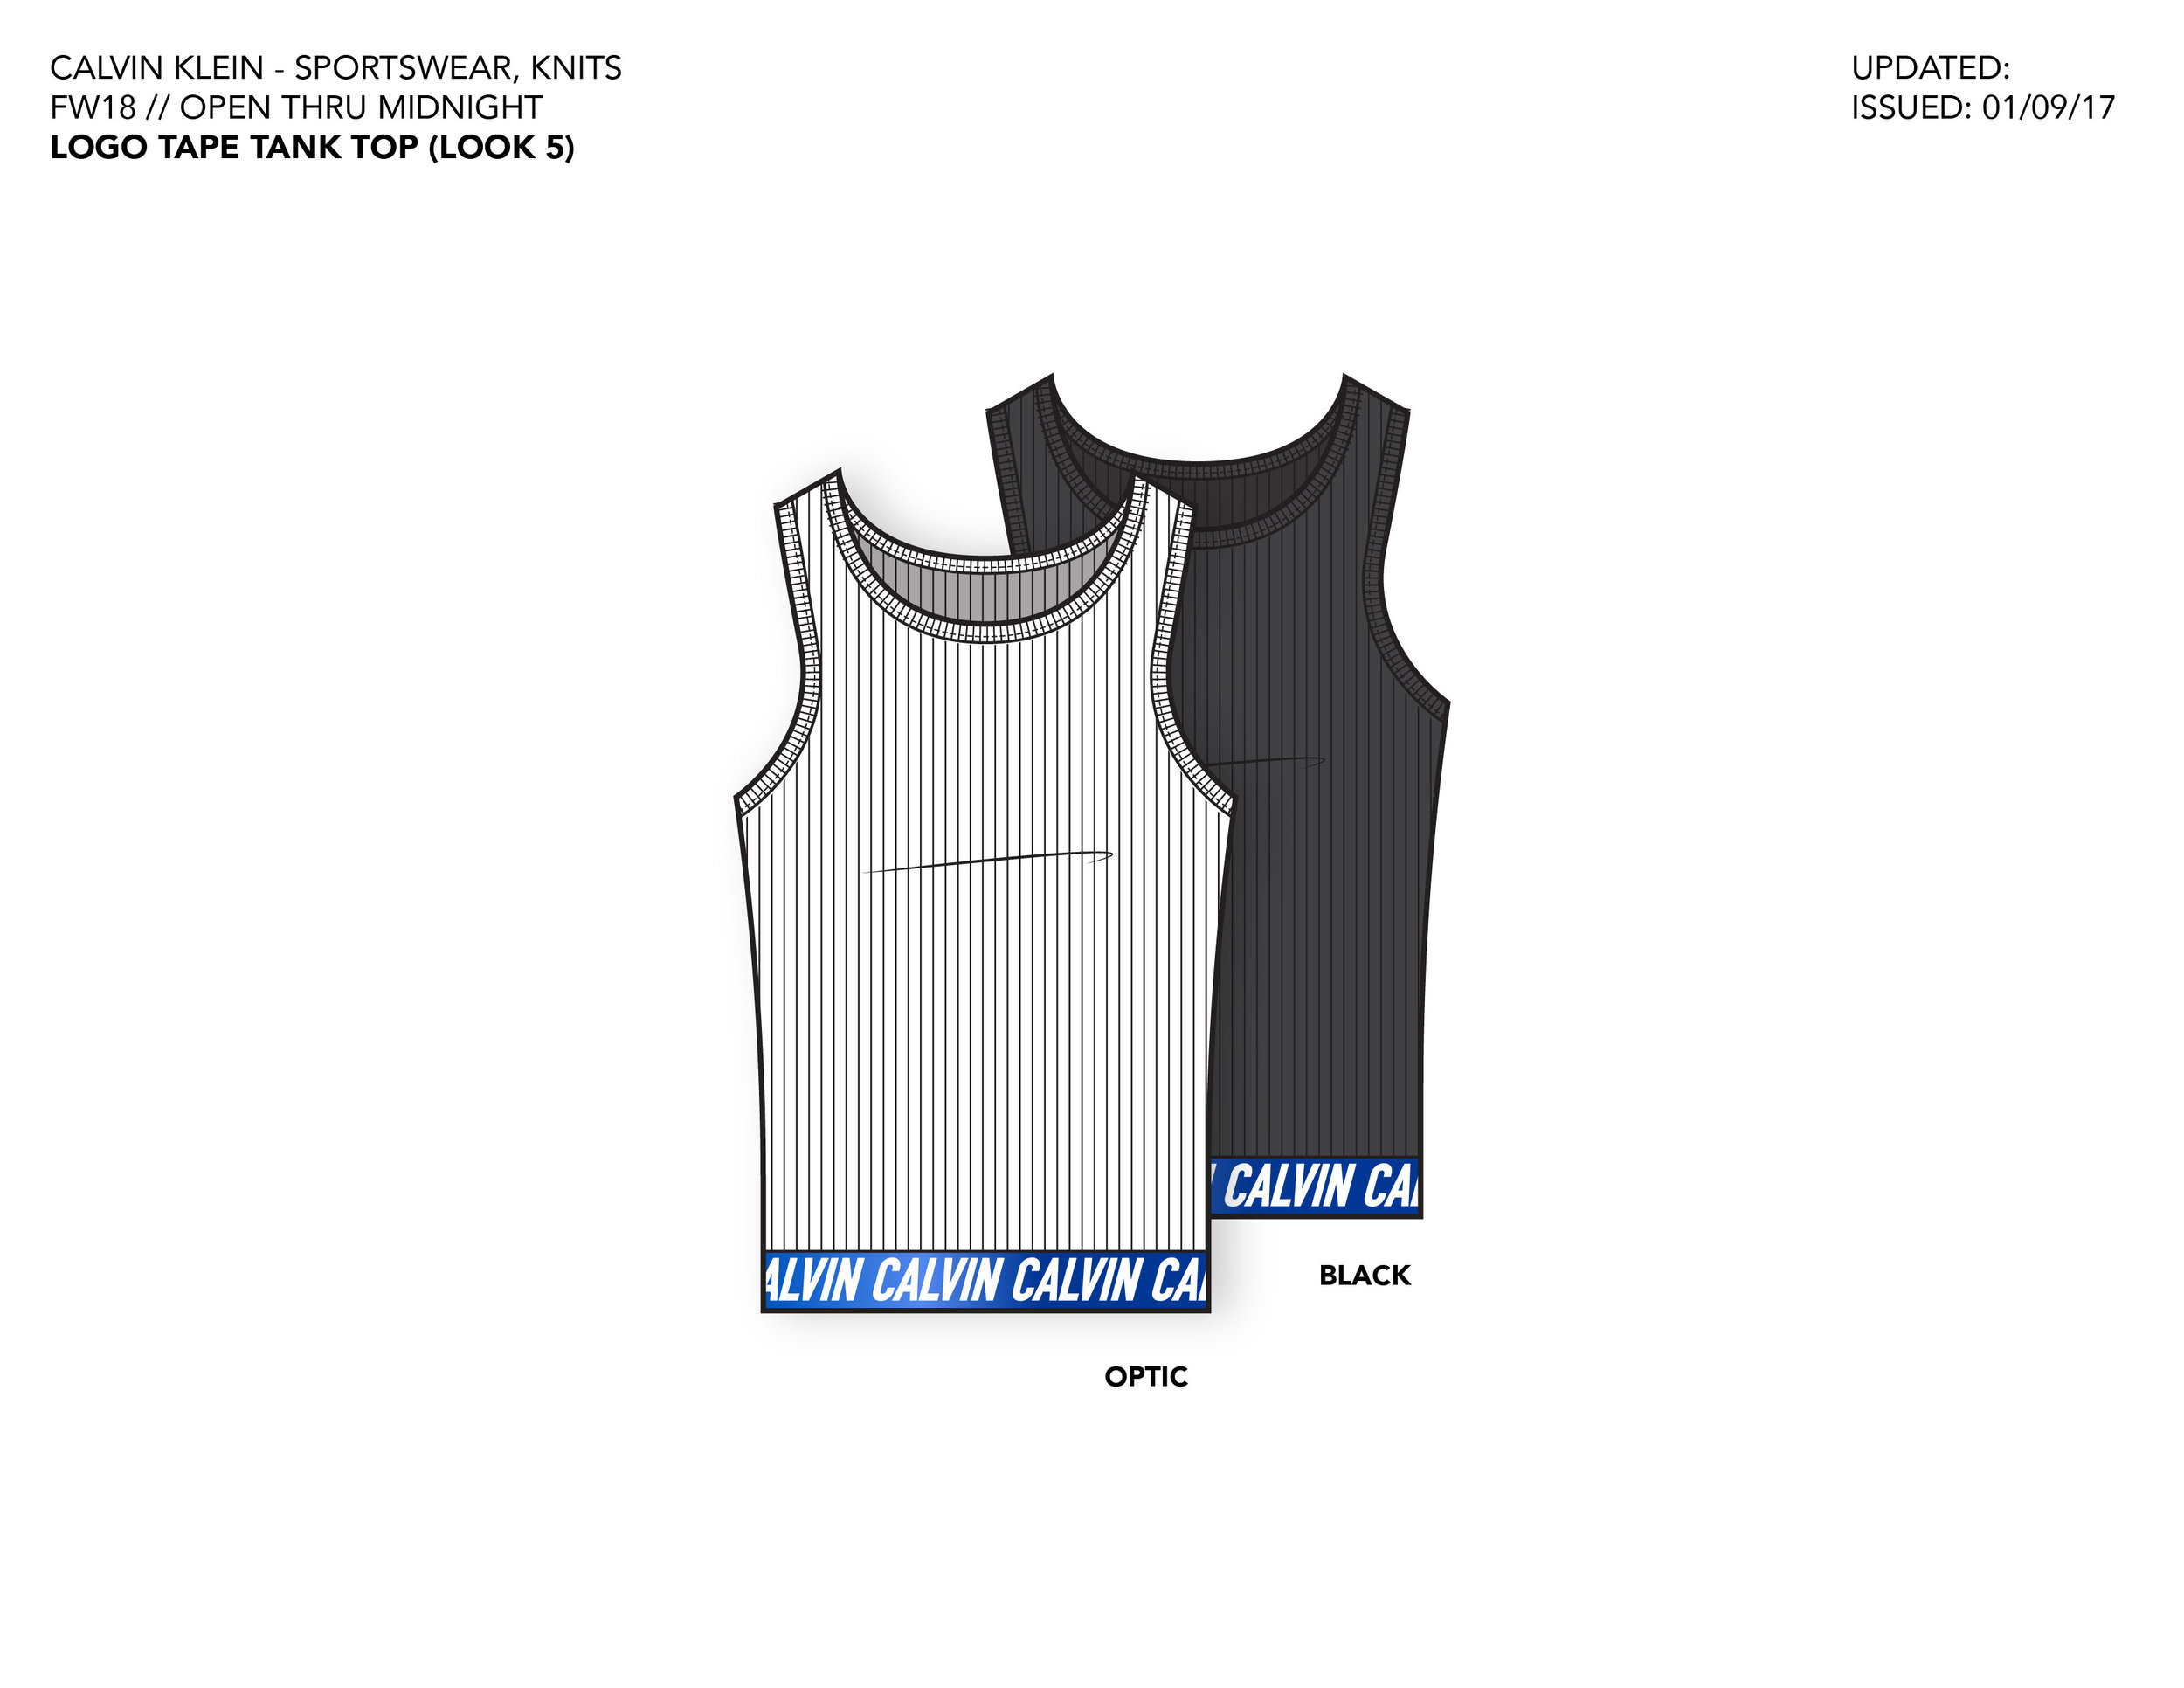 LOOK 5 - LOGO TAPE TANK TOP.jpg